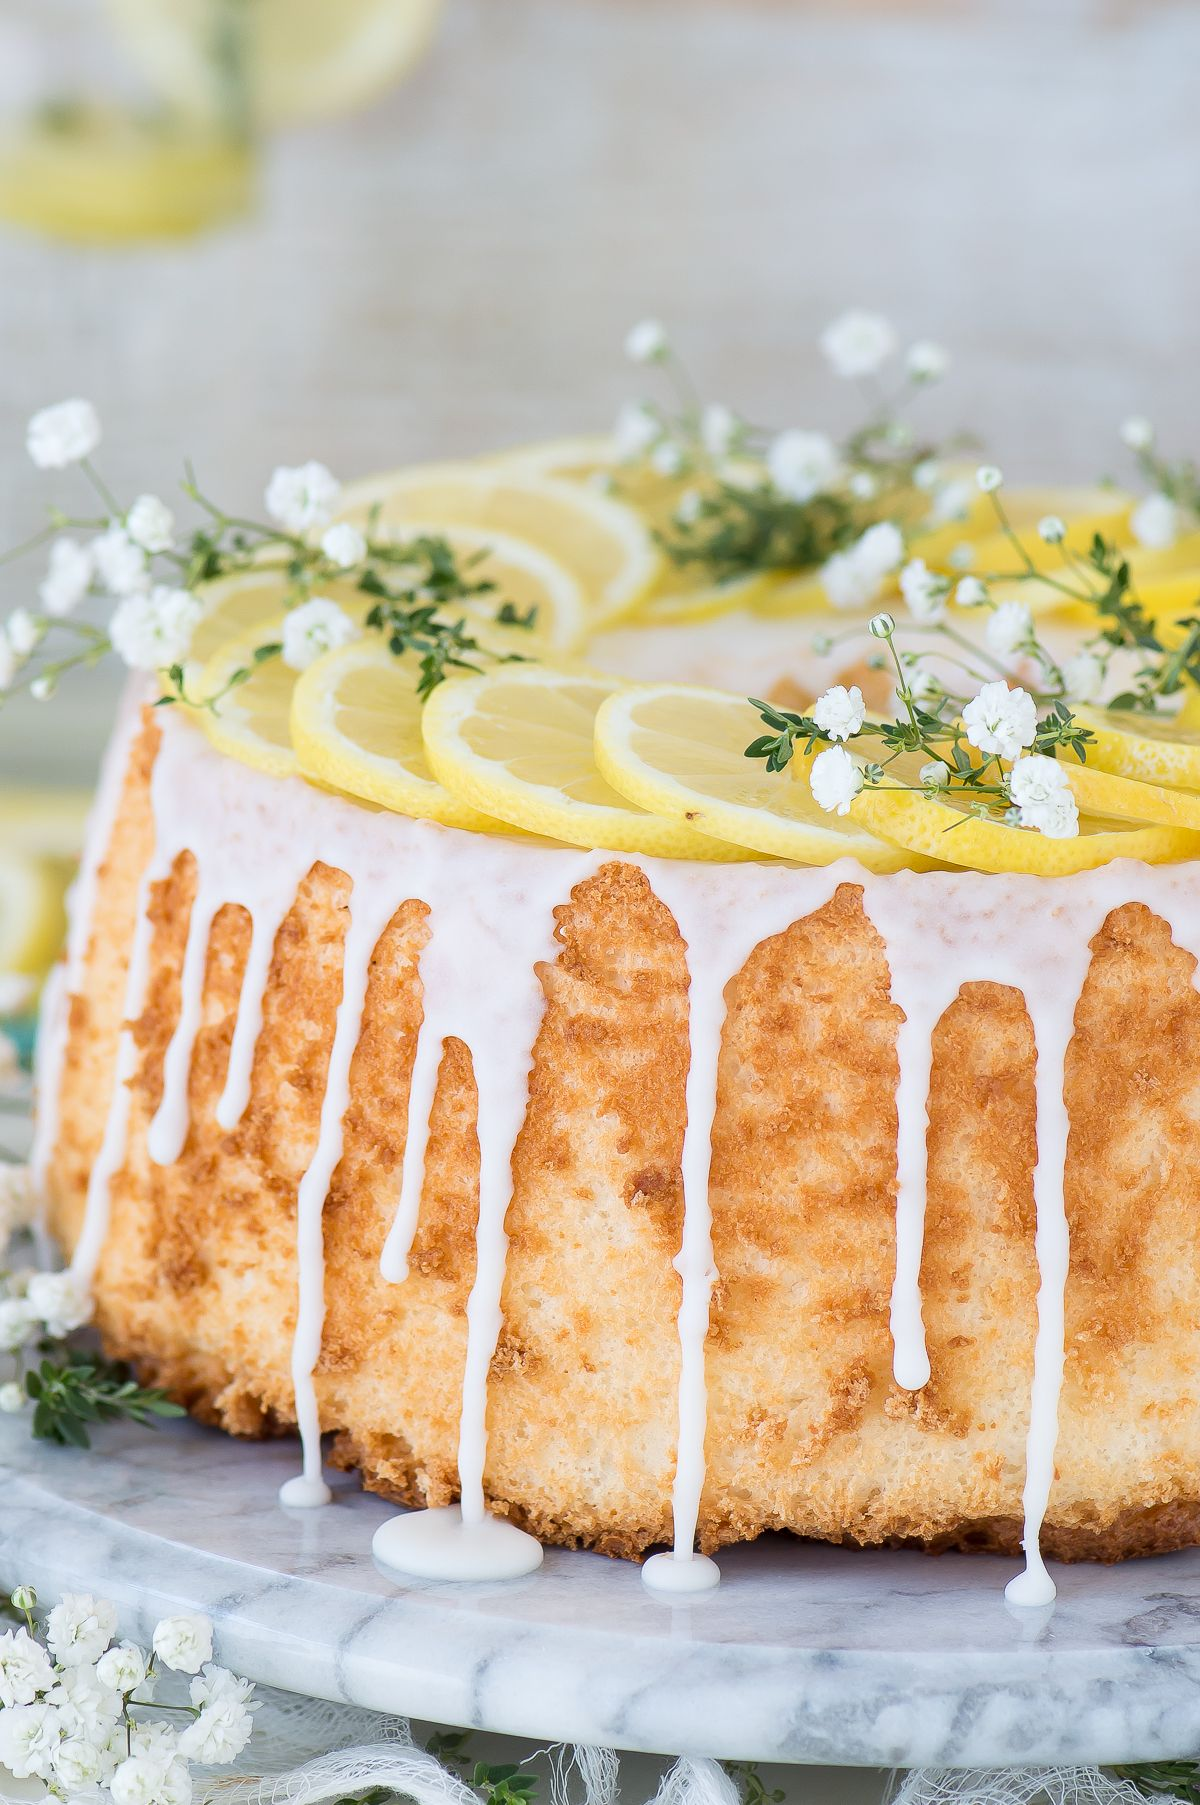 Easy and rustic lemon angel food cake that begins with a box mix easy and rustic lemon angel food cake that begins with a box mix forumfinder Choice Image